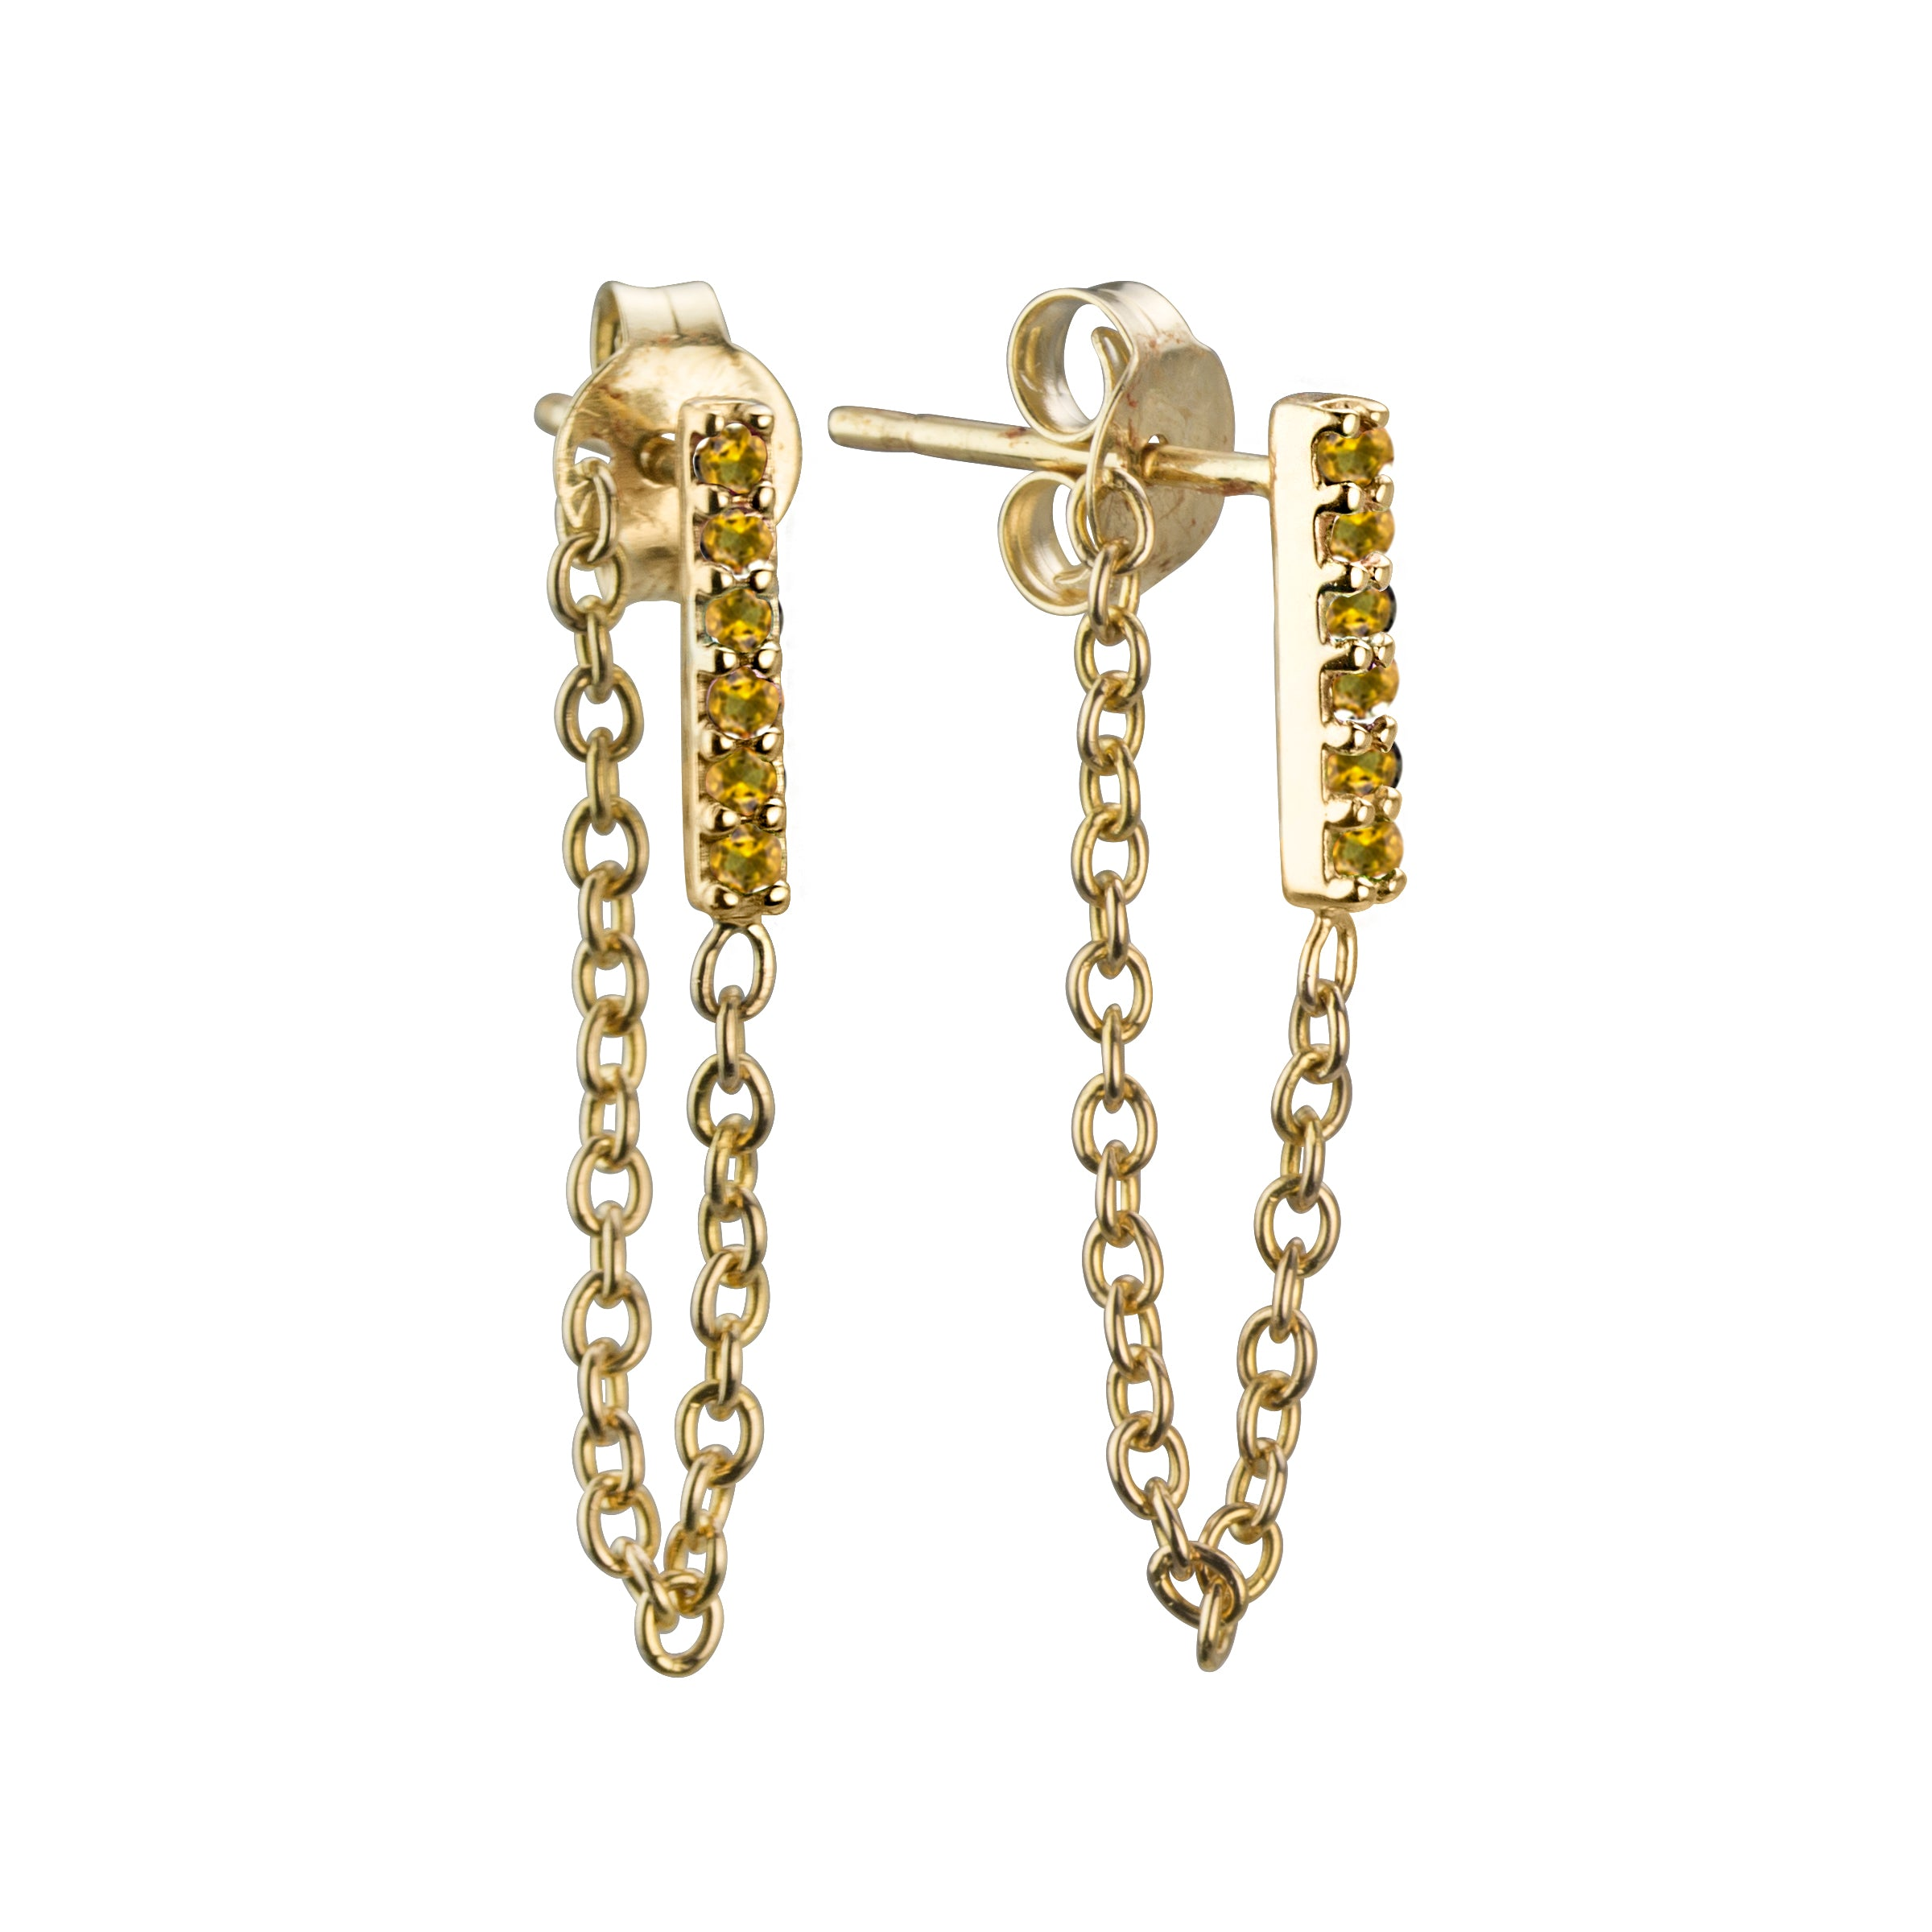 Semi-precious Citrine stone line earrings with chain in 14k yellow gold